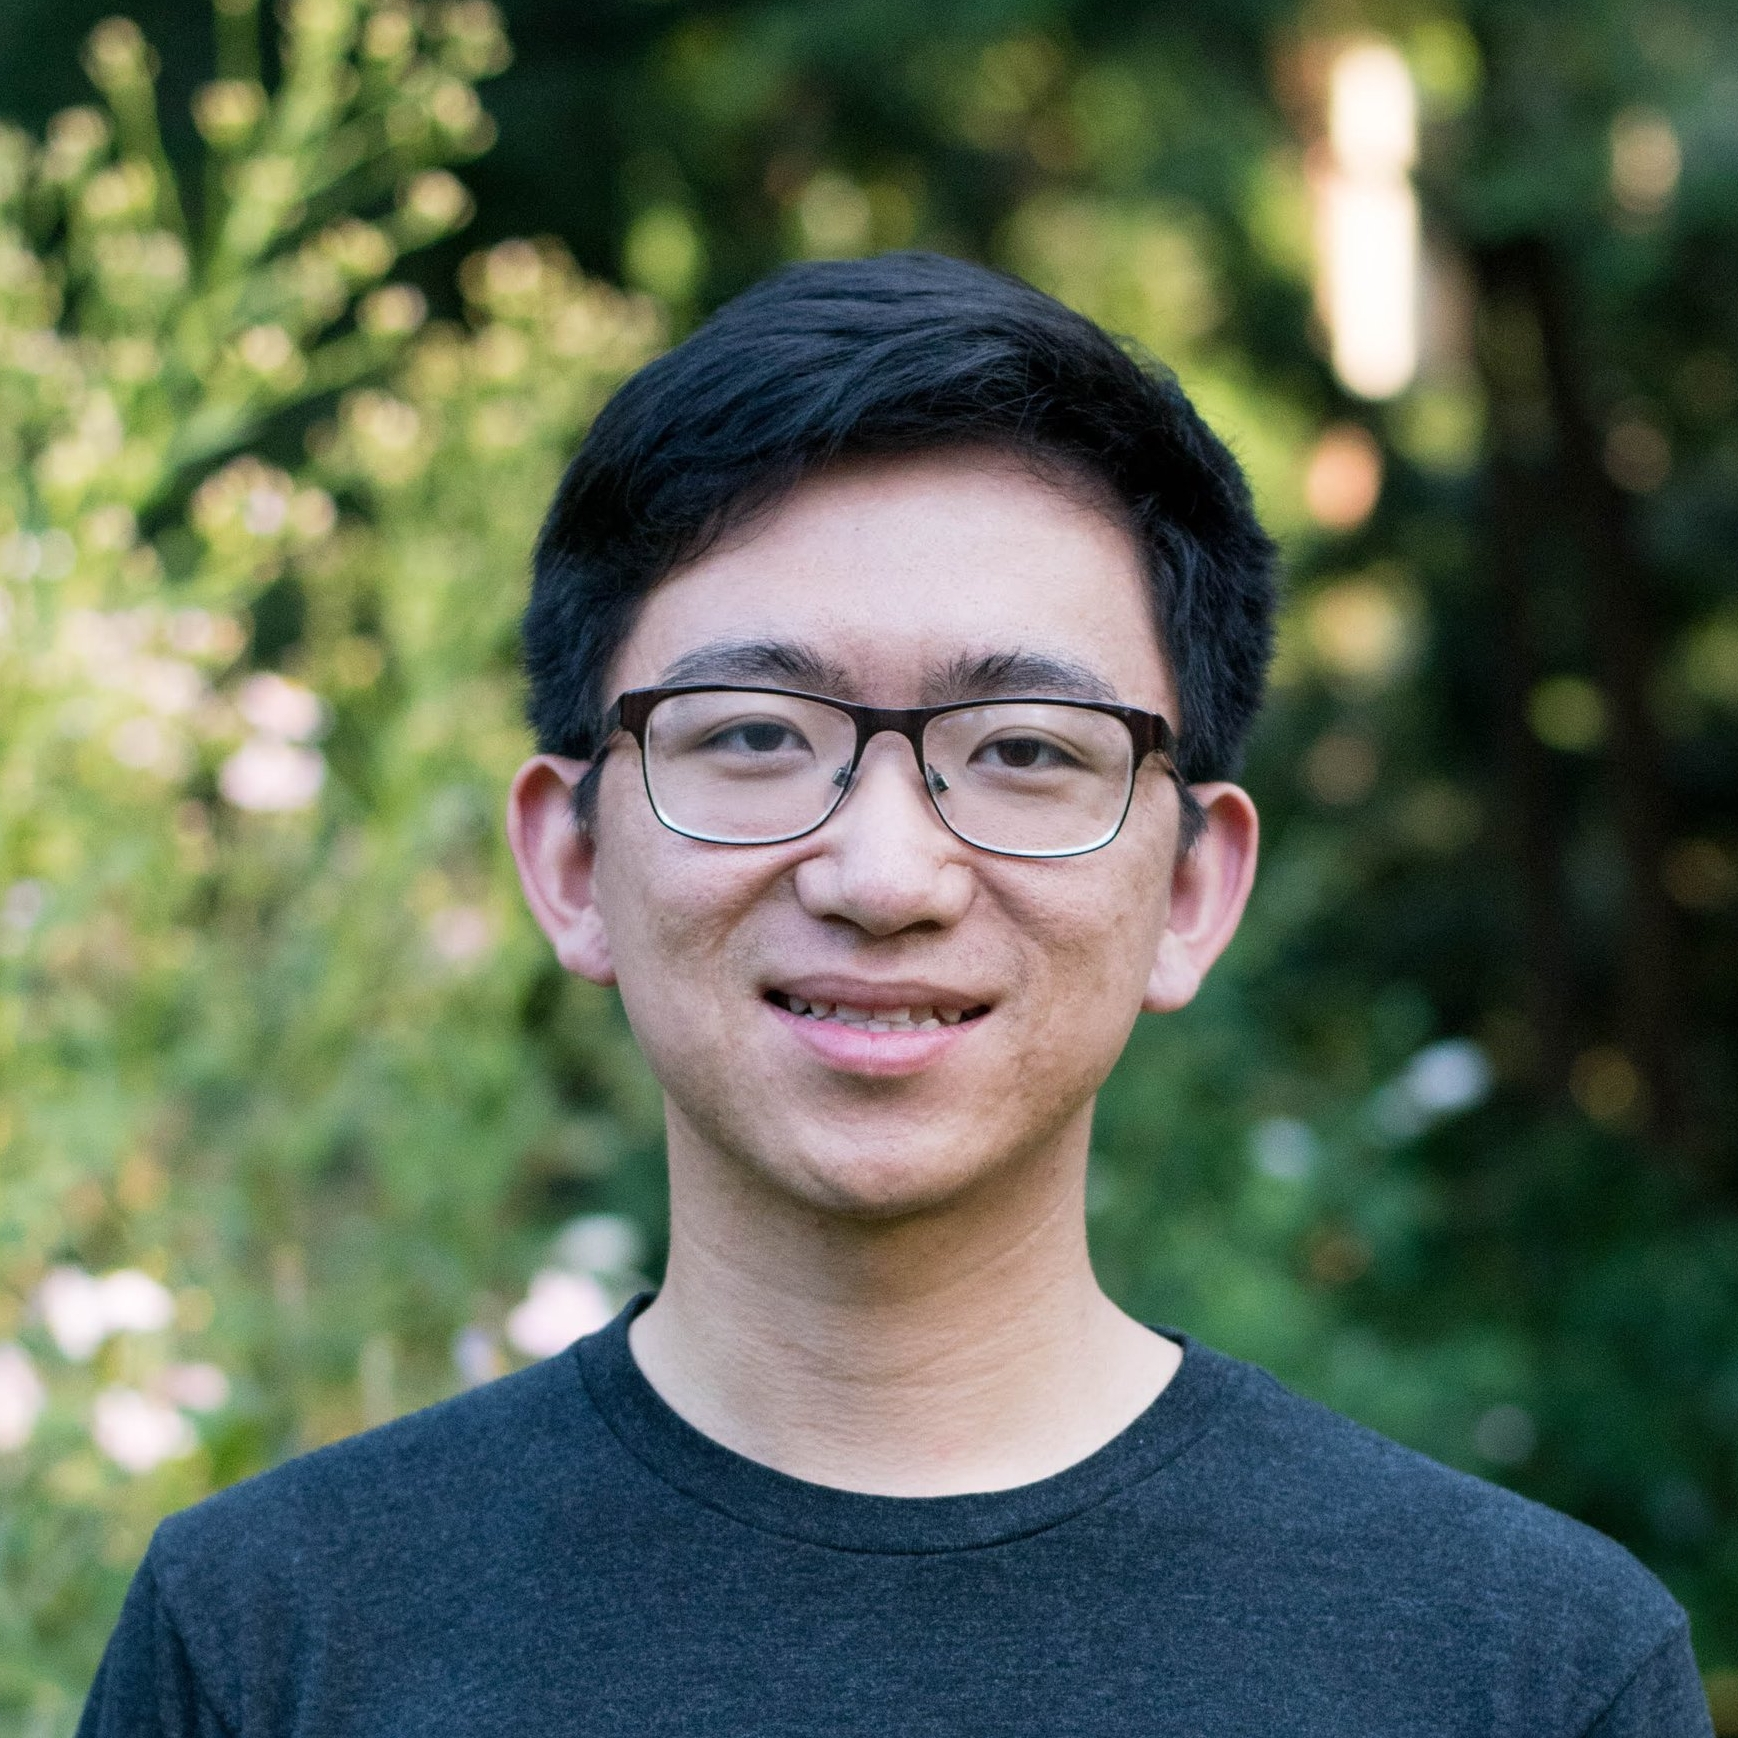 Phillip Yoon '20    Phillip is a prospective math major from Irvine, California. He plays jazz piano and is usually daydreaming about what superpowers he would like to have. He is a mellow fellow that also plays the cello, eats jello, and likes the color white (and likes when words rhyme).